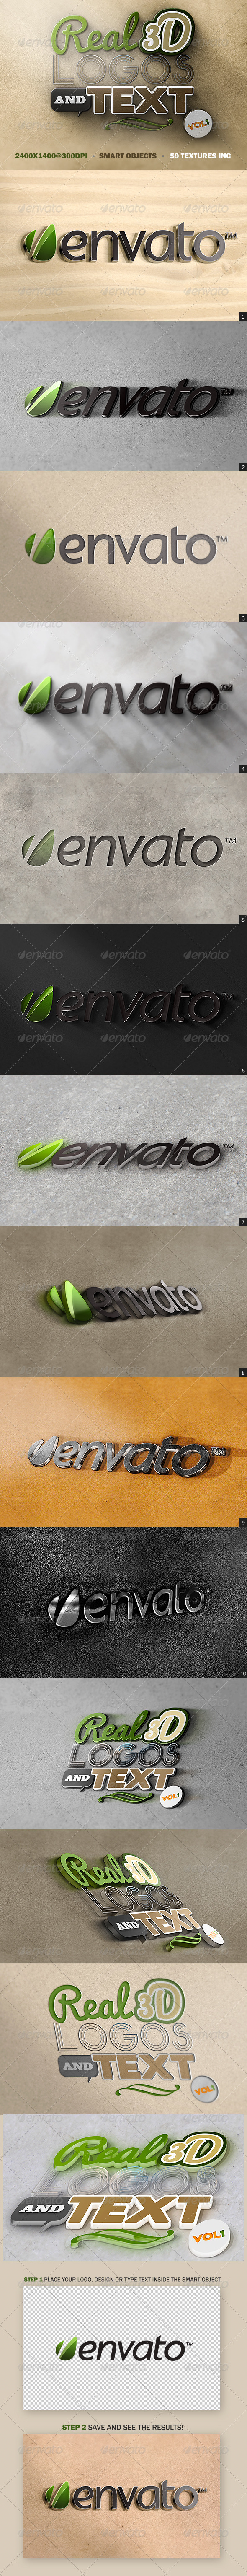 GraphicRiver Real 3D Logos and Text Vol1 5167215